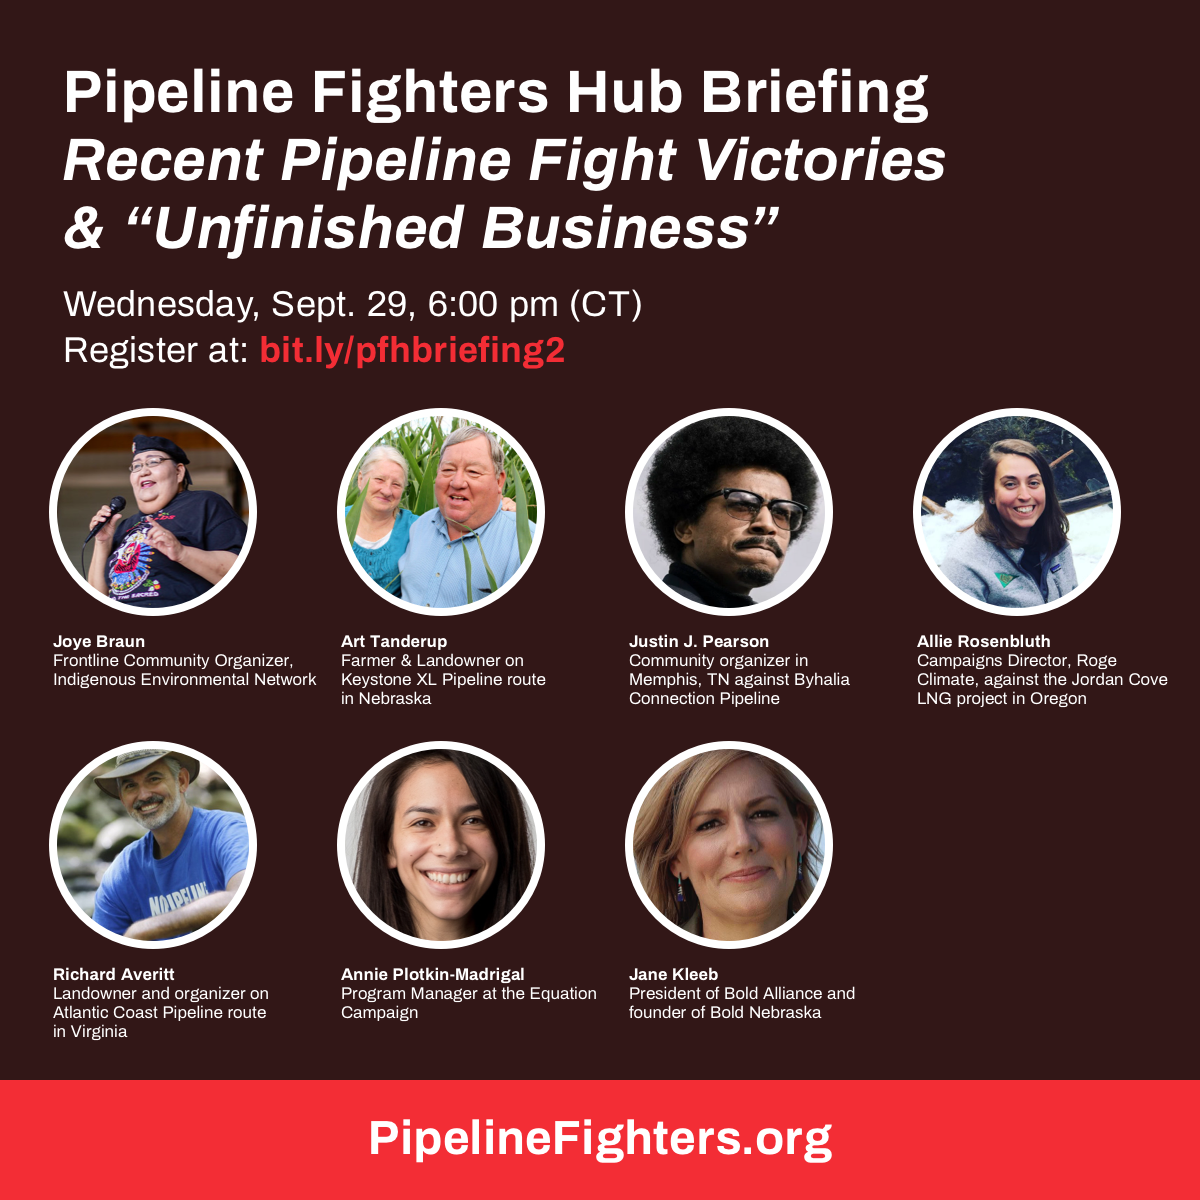 Register for the Sept. 29 briefing